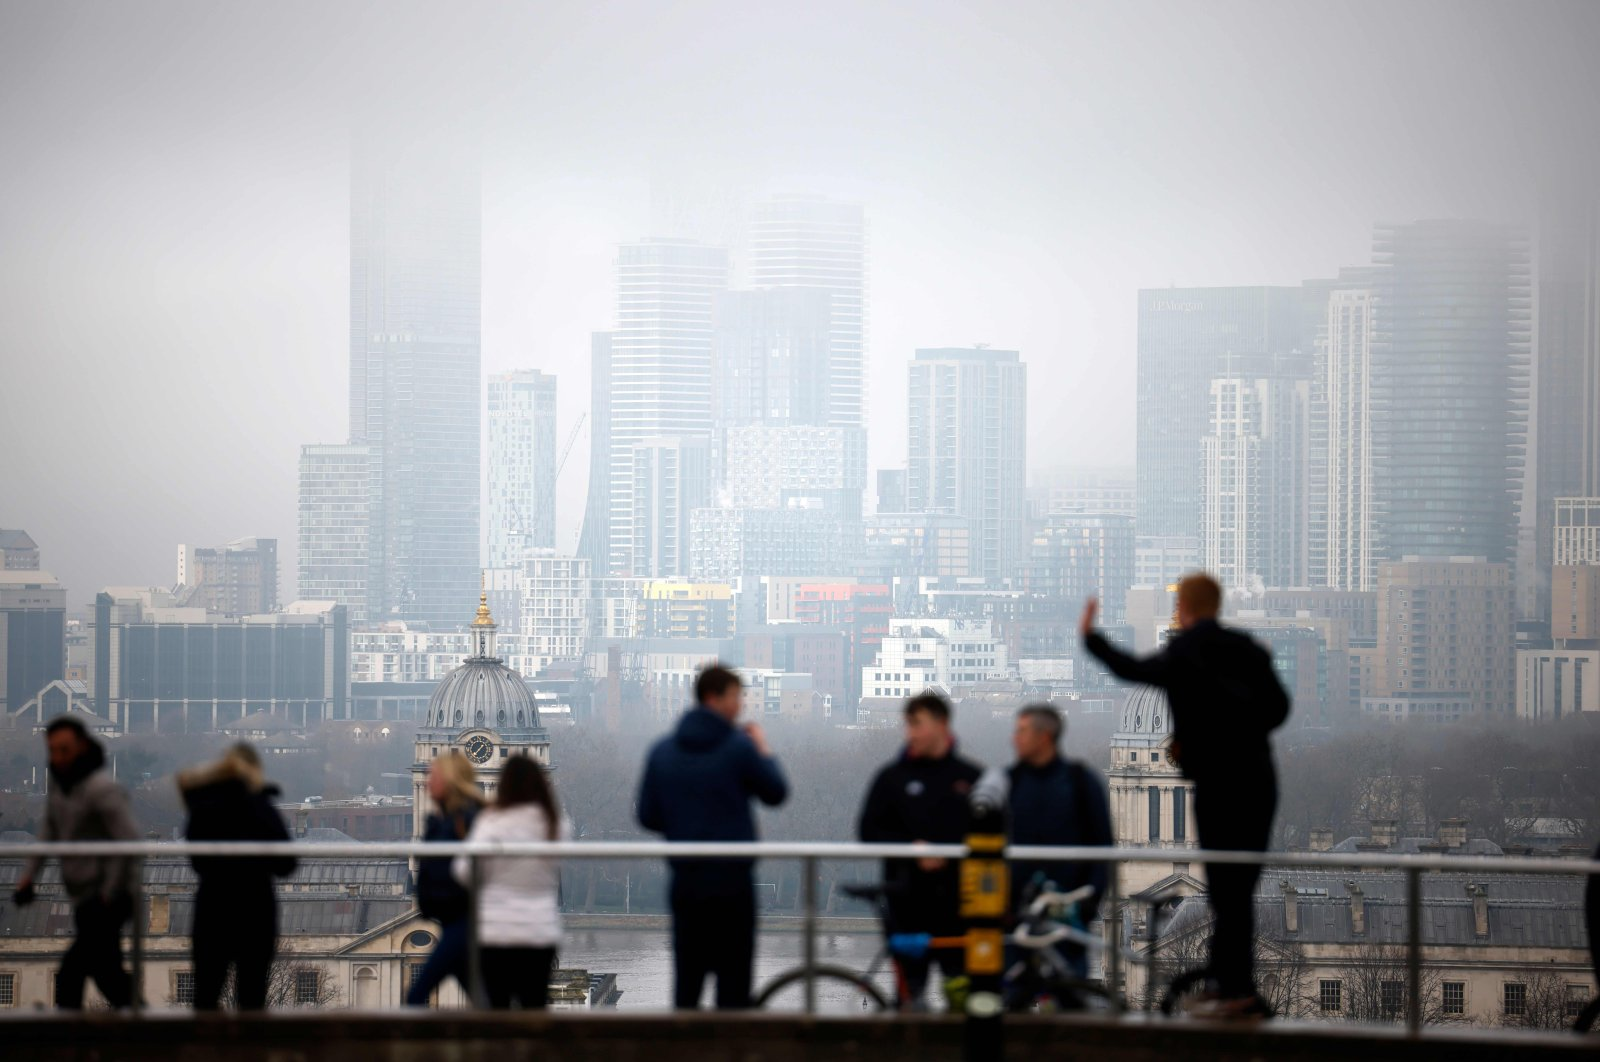 People walk in Greenwich Park with the office buildings of the Canary Wharf financial district in the background in London, U.K., Dec. 28, 2020. (AFP Photo)